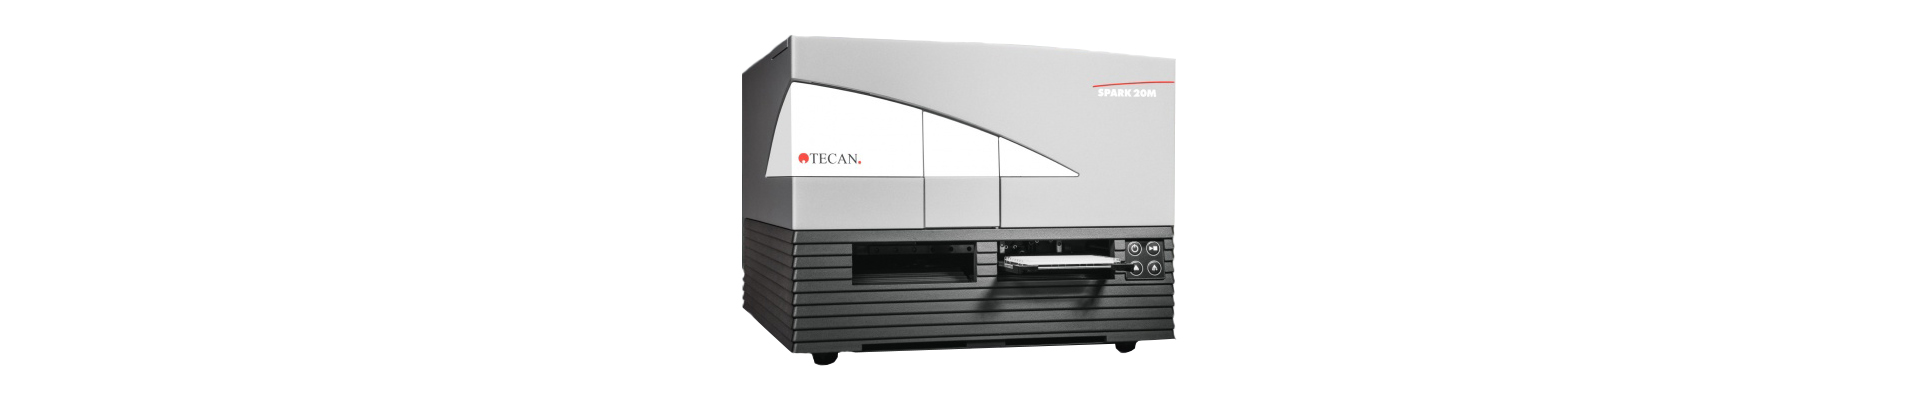 Plate Readers by Tecan